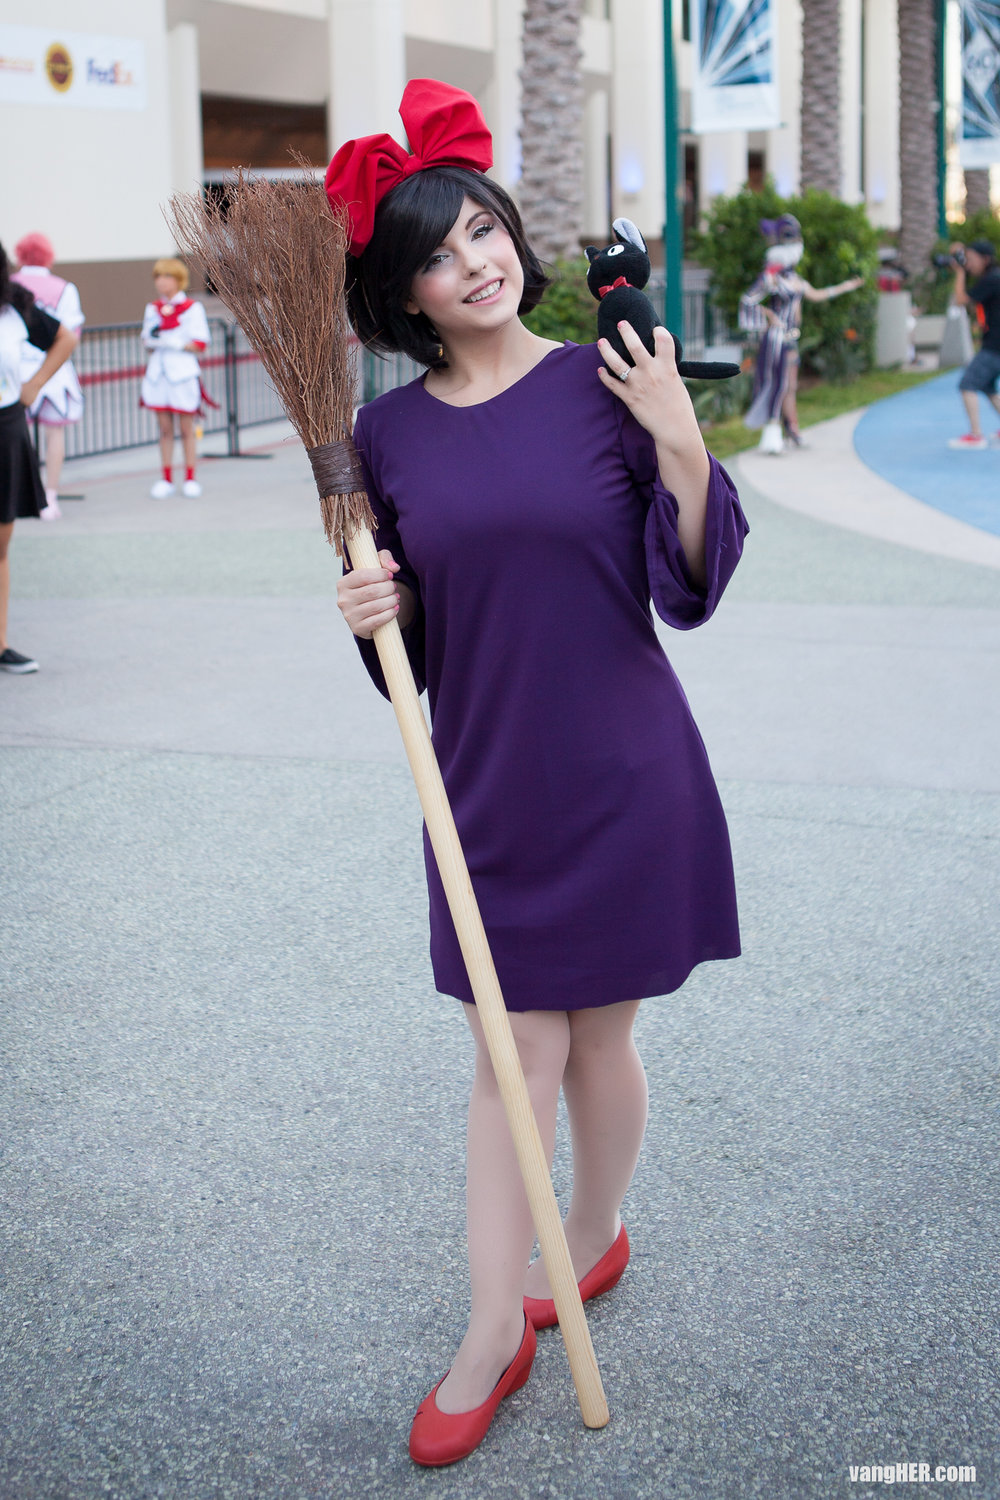 animecalifornia_20150829-2416-Edit.jpg